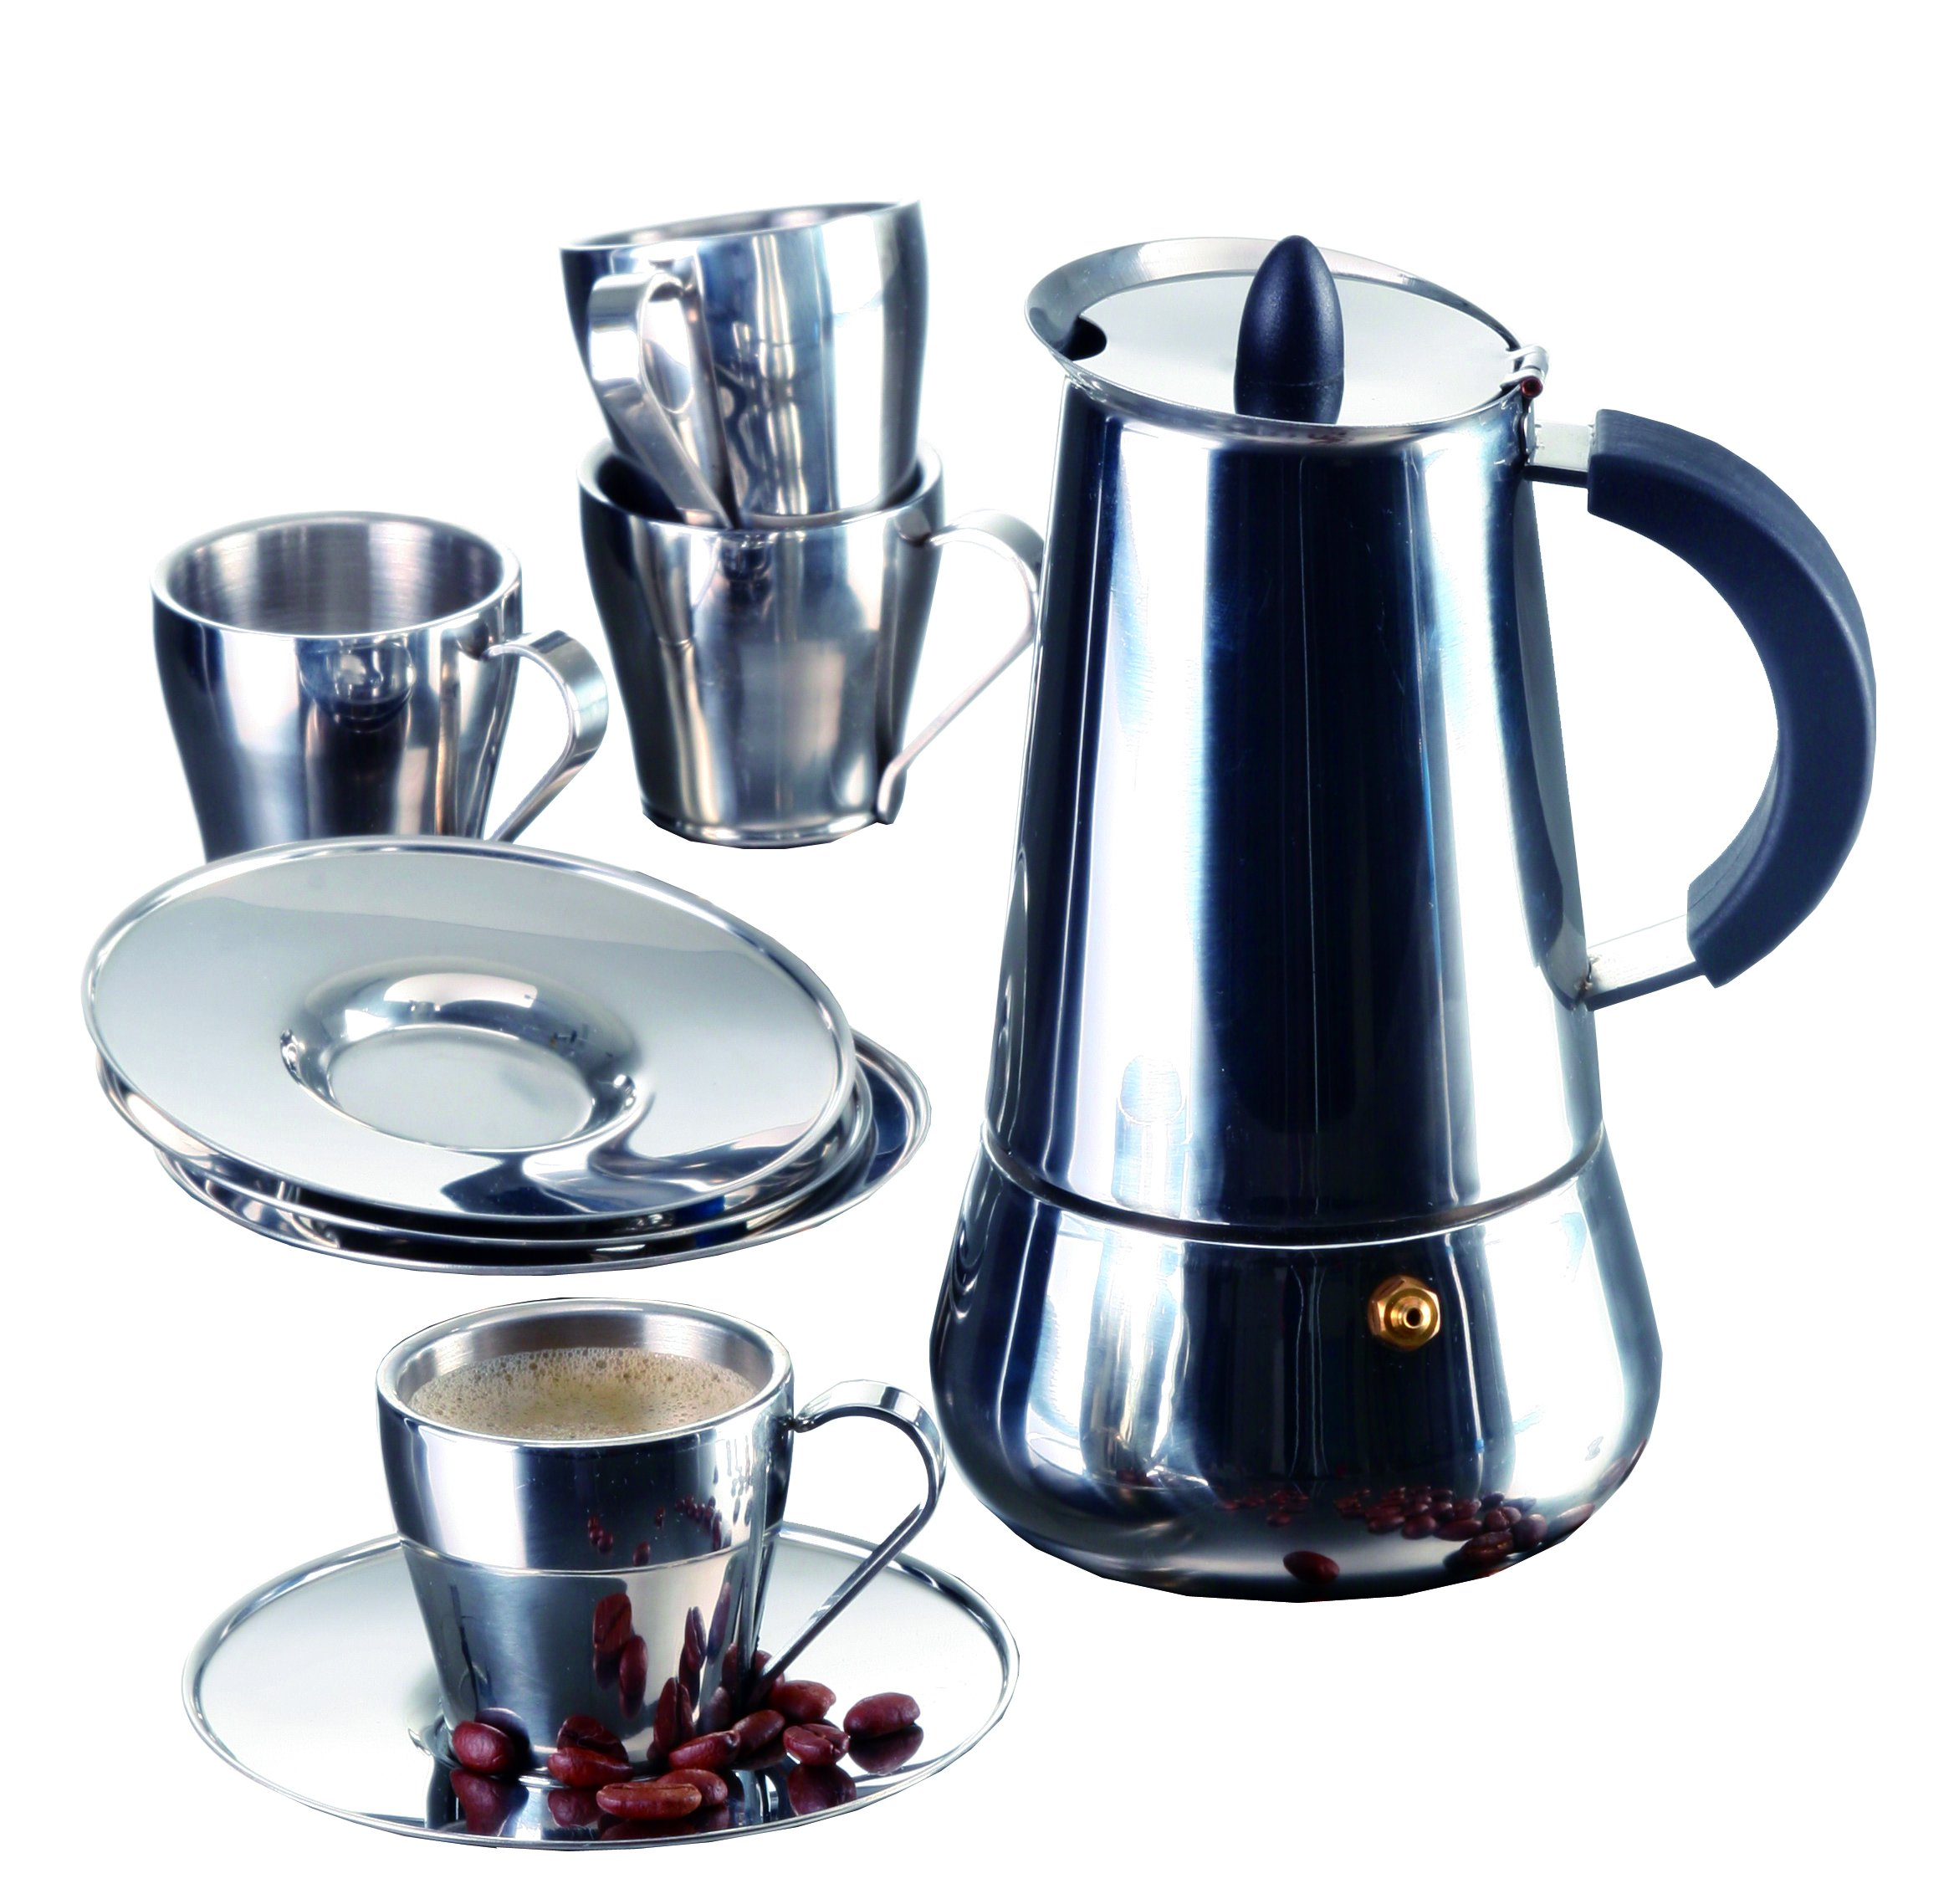 IMUSA USA B120-22069SET Stainless Steel Espresso Set with Stovetop Coffeemaker, Cups and Saucers 9-Piece Silver by Imusa